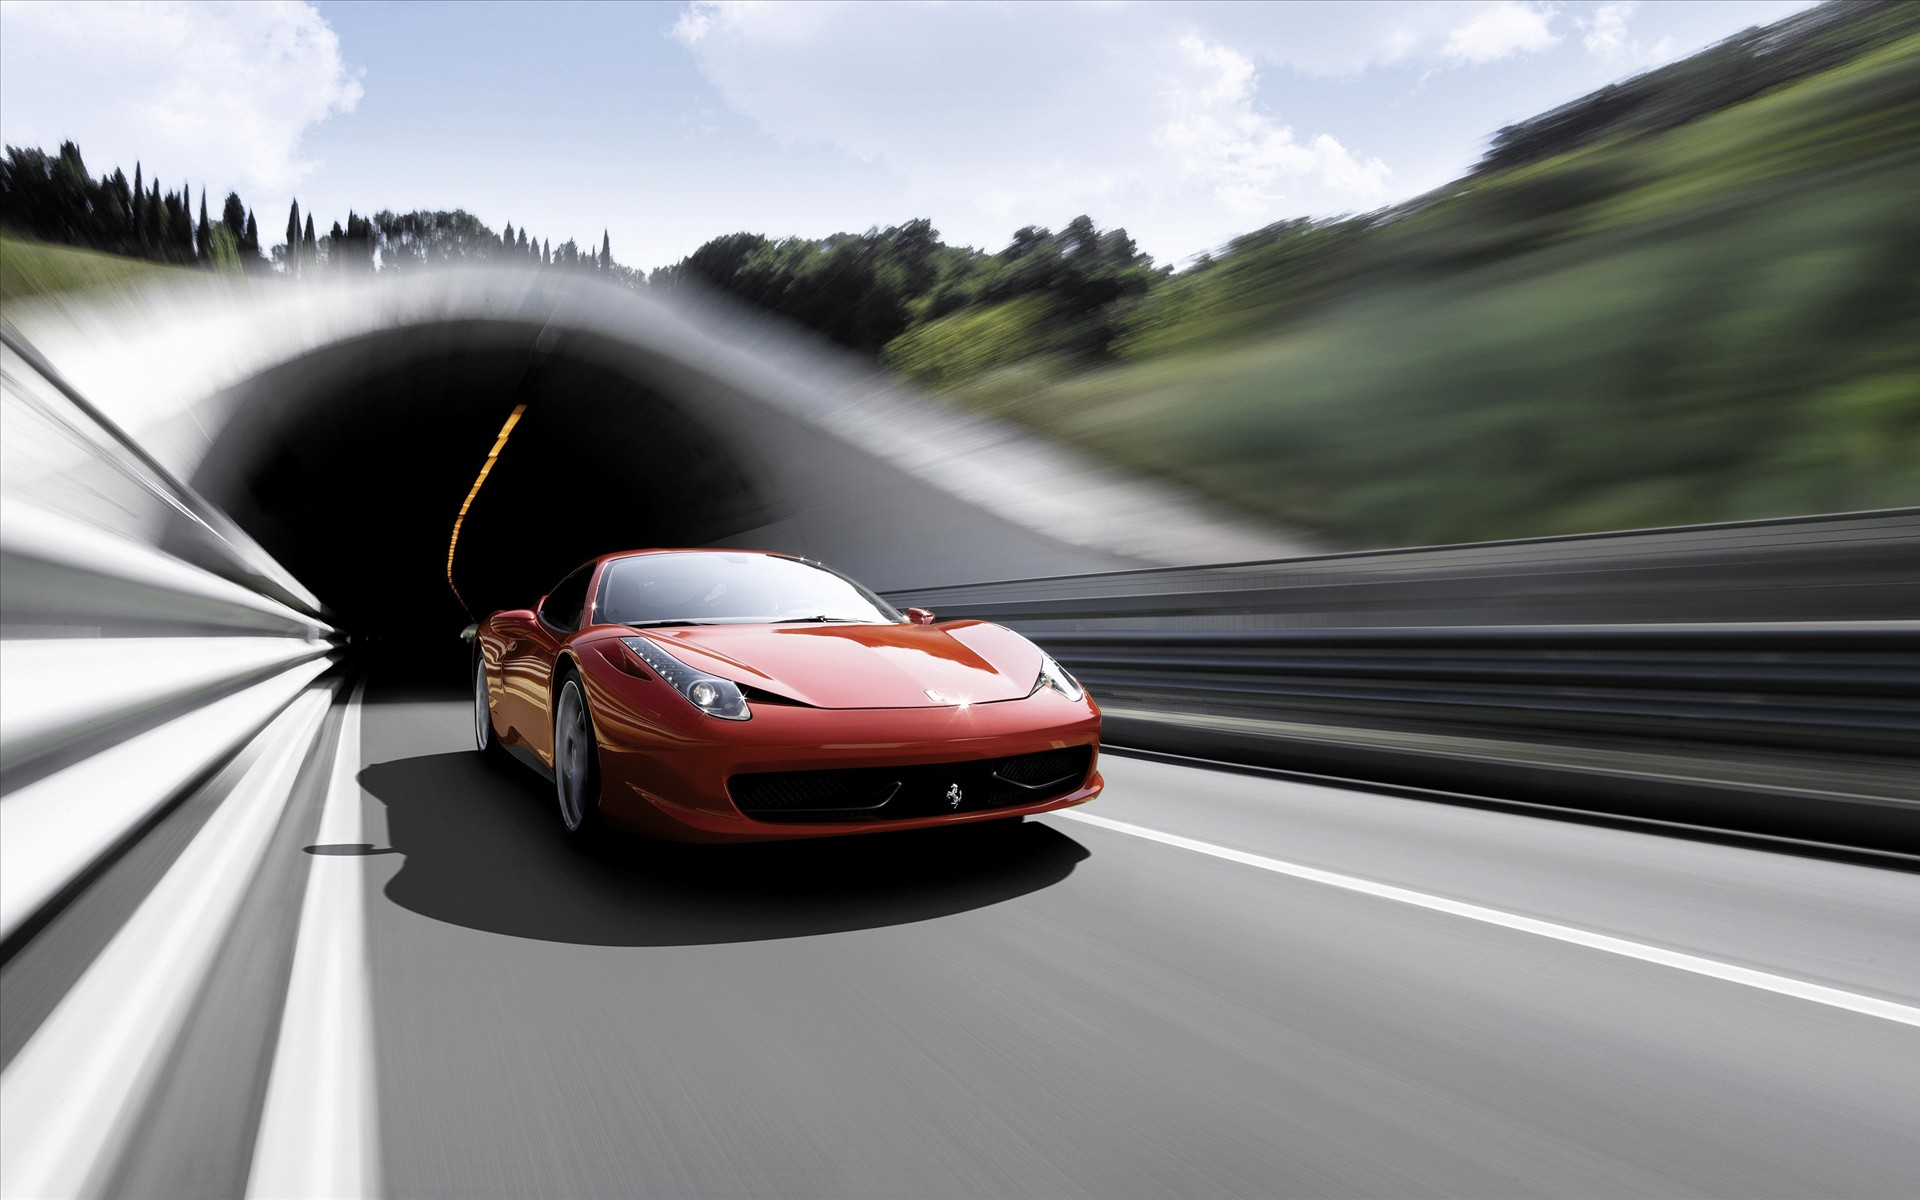 Ferrari 458 Italia Supercar 4 Wallpapers HD Wallpapers 1920x1200